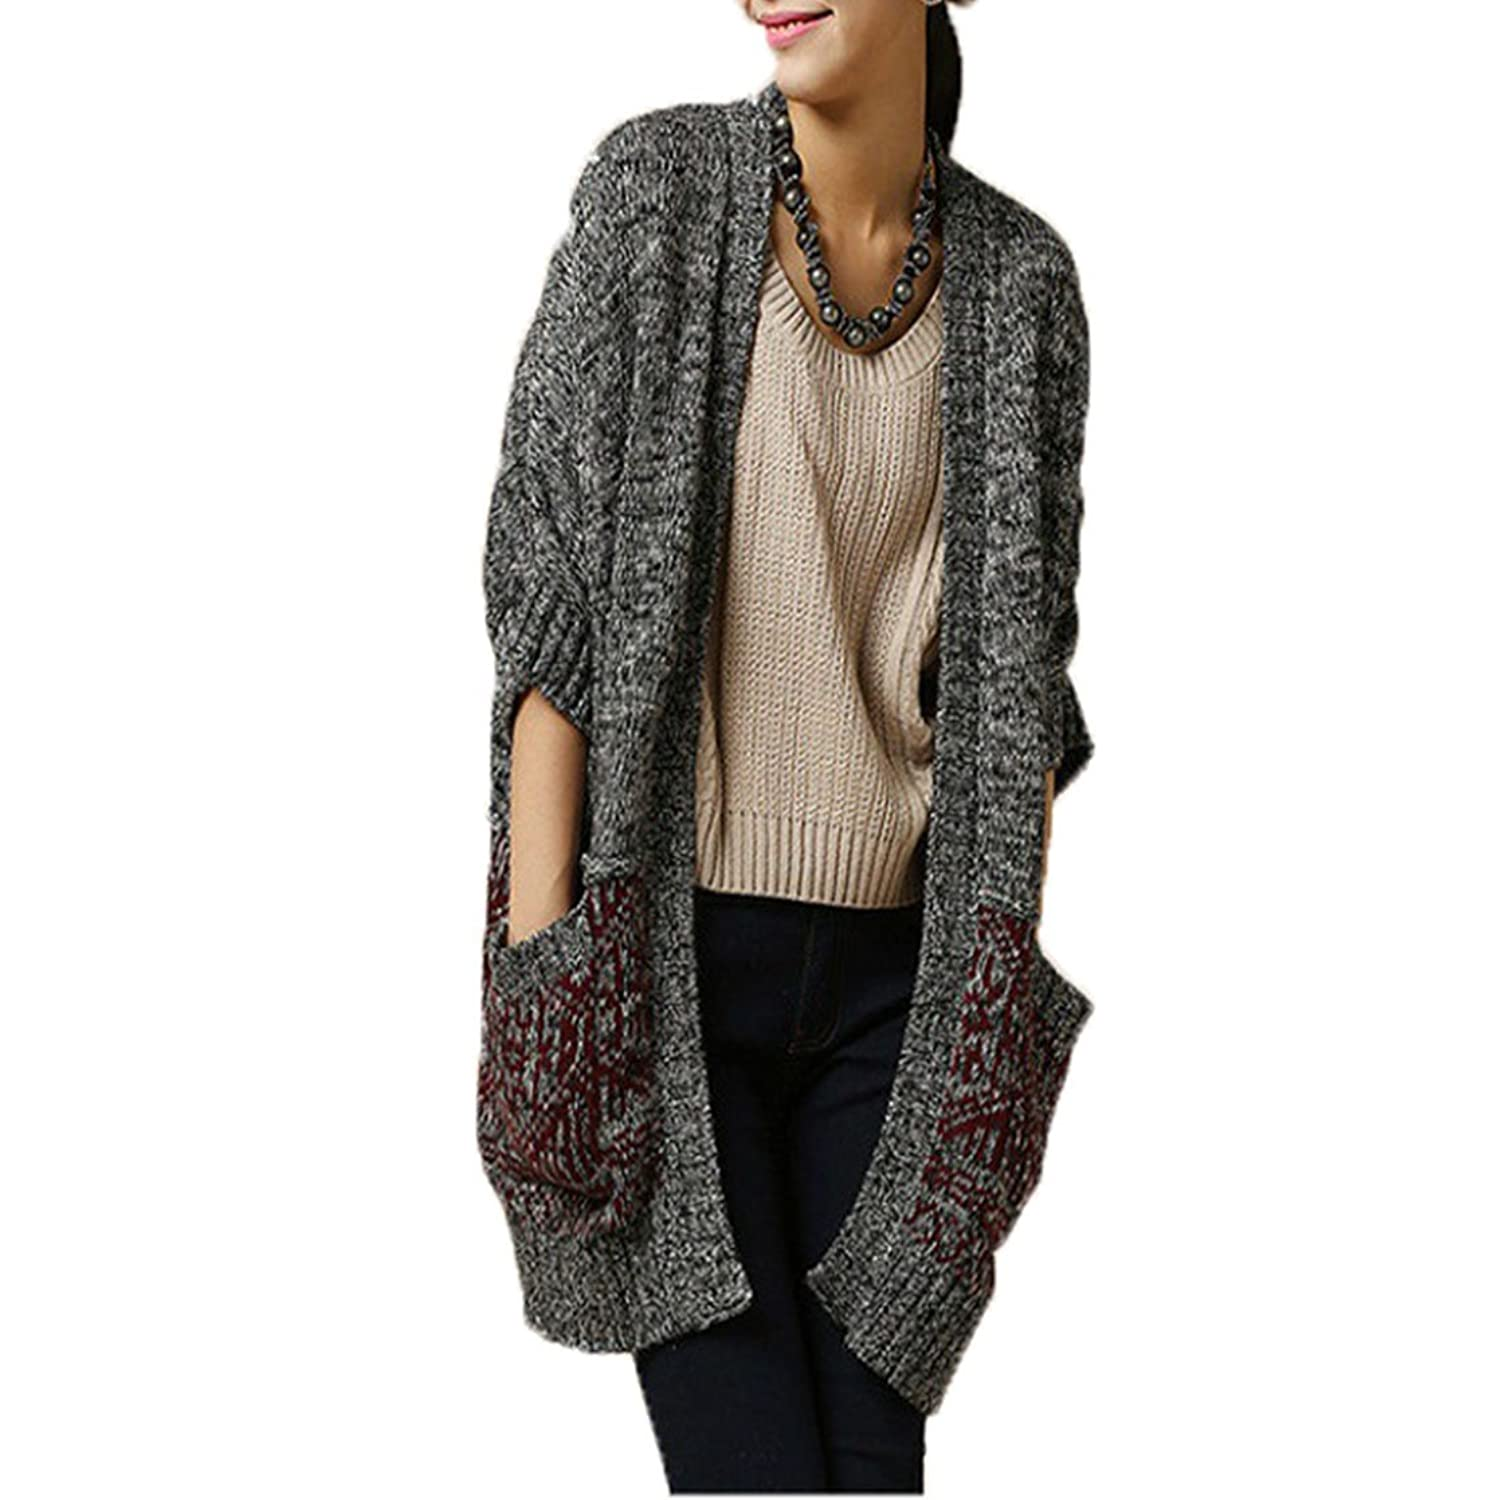 Tidecloth Women's Cozy New 1 Colors 1 Sizes 2015 Crew Cardigans Cotton Gray One Size